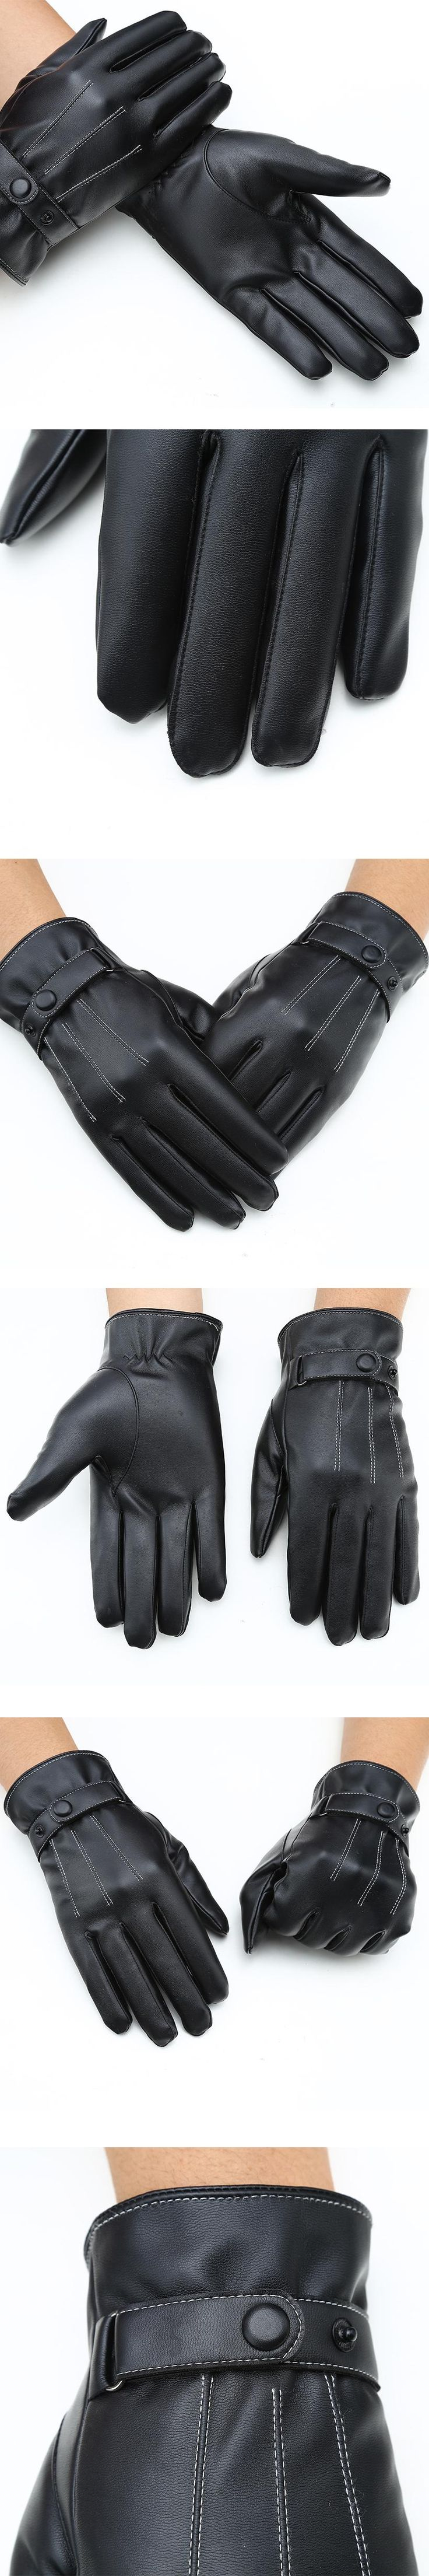 Mittens Keep Warm Winter Gloves Driving Men's Leather Gloves Touch Screen Gloves for Iphone for Sumsung Smart Phone for ipad